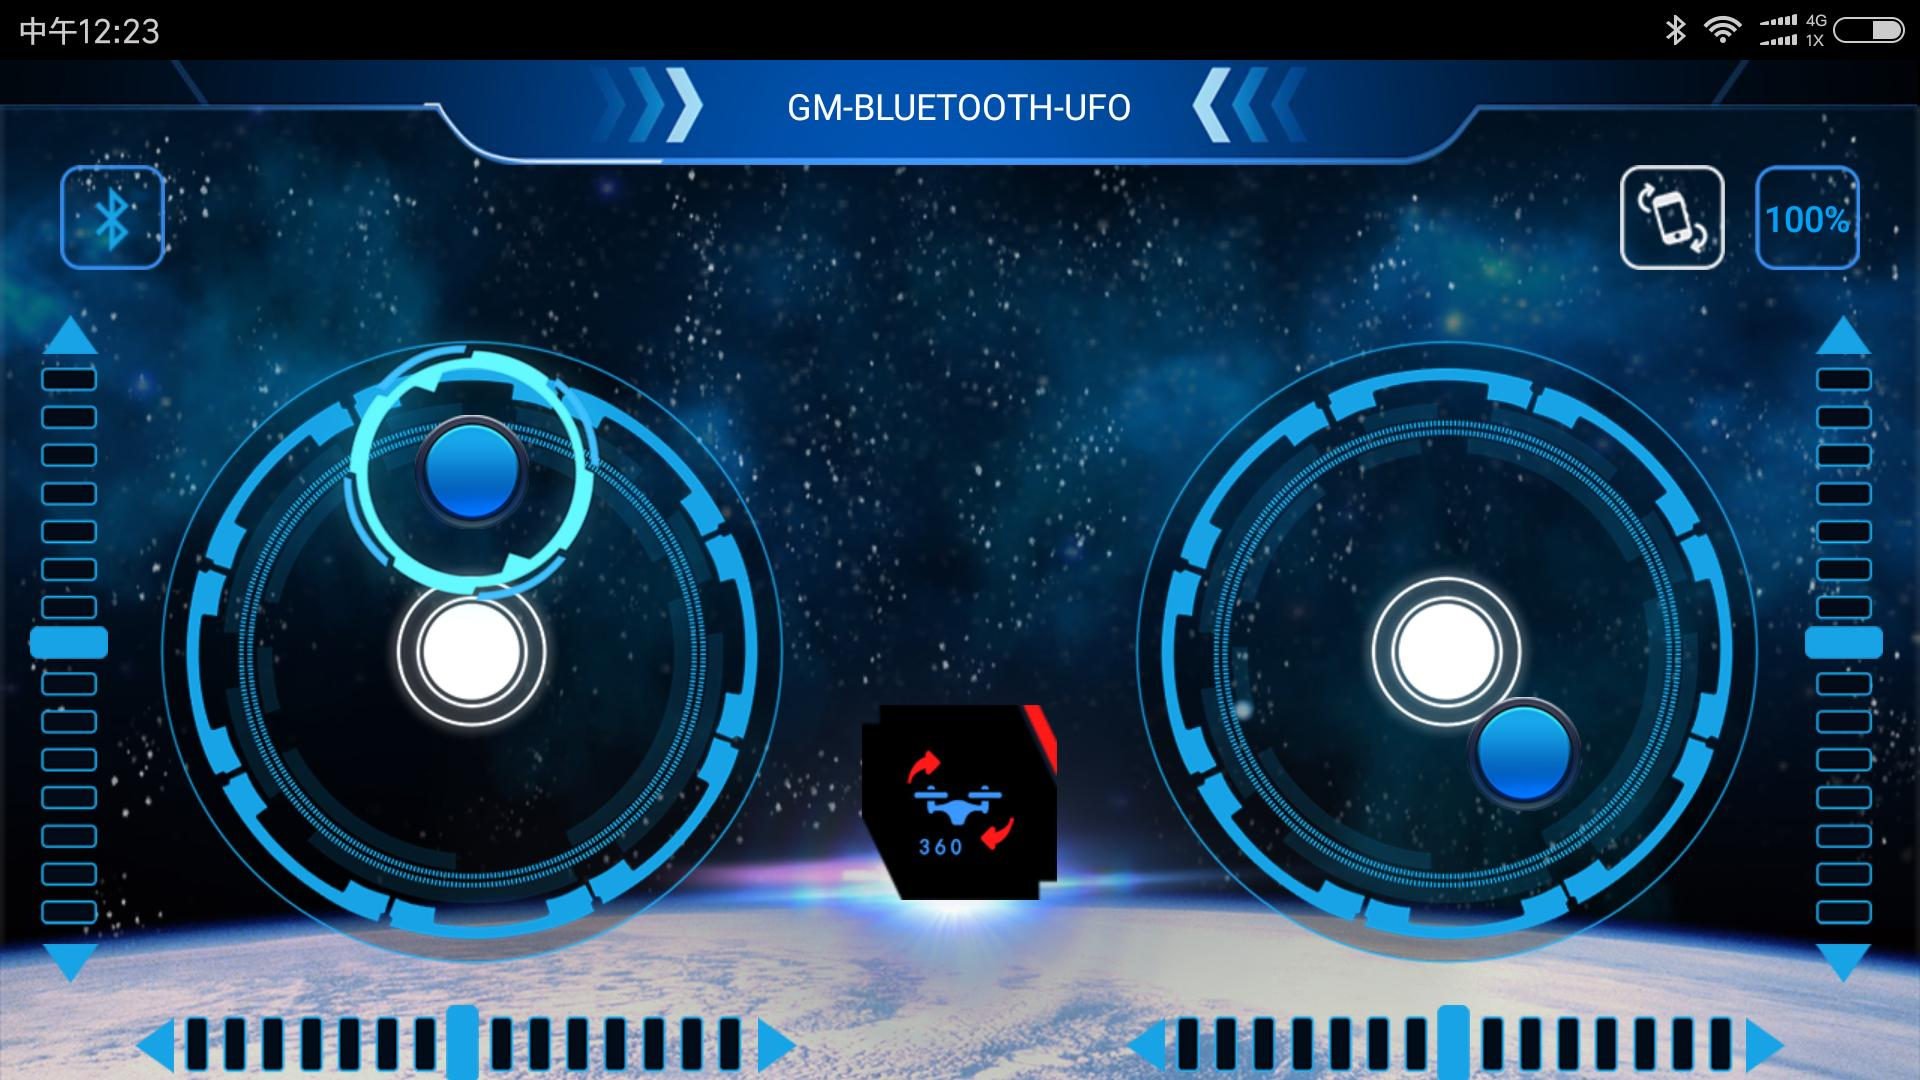 YD-BLUETOOTH-UFO for Android - APK Download